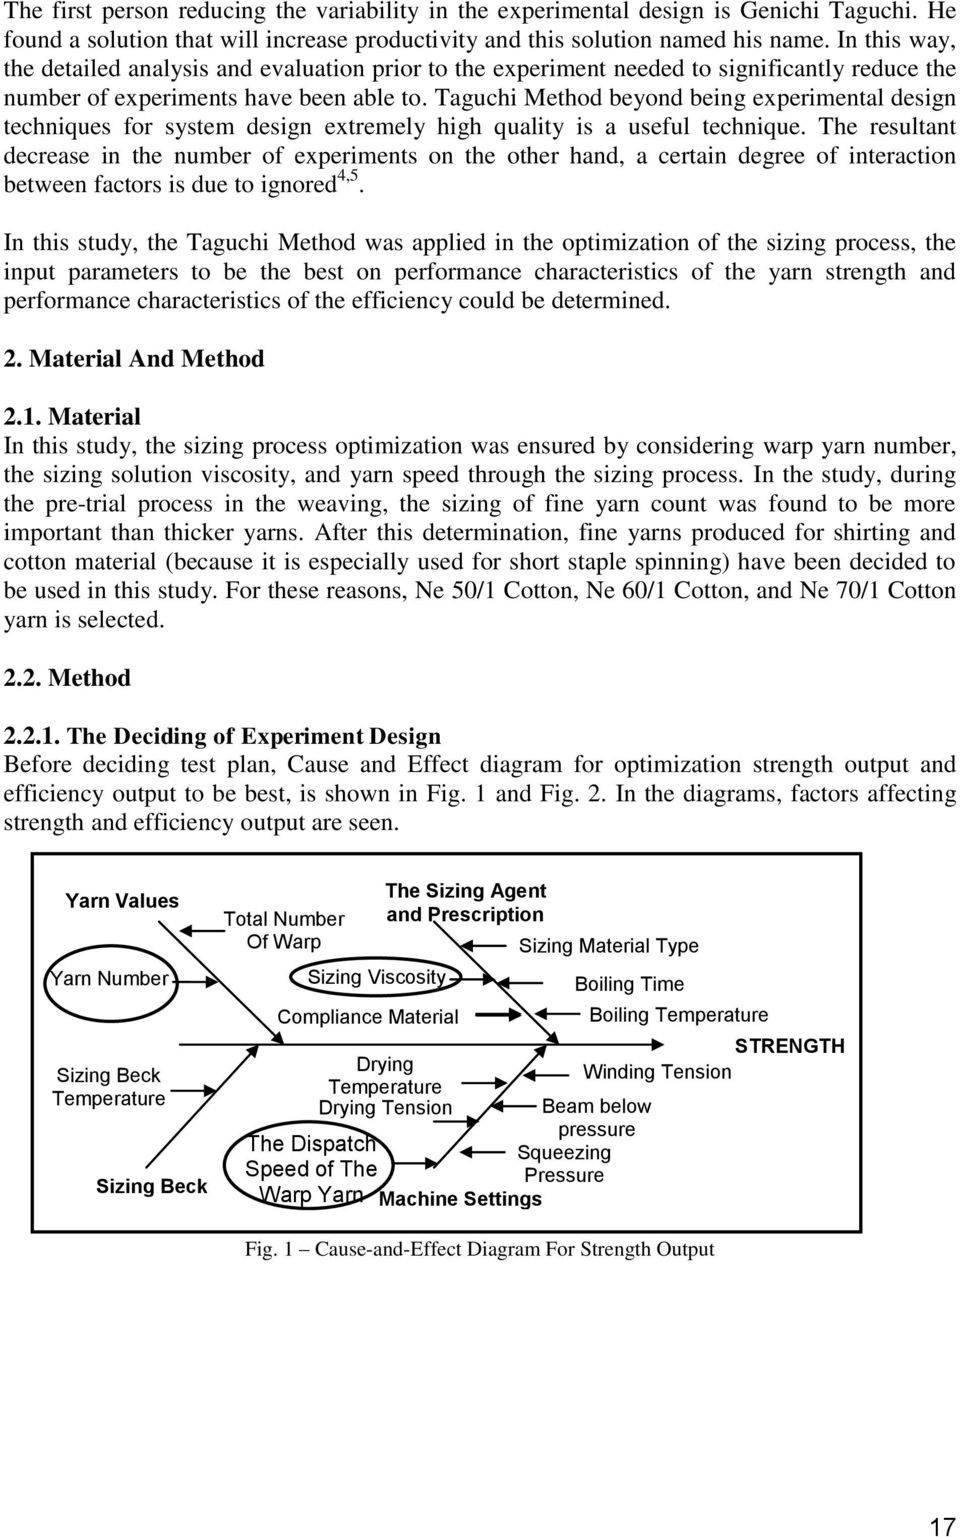 Taguchi Method beyond being experimental design techniques for system design extremely high quality is a useful technique.